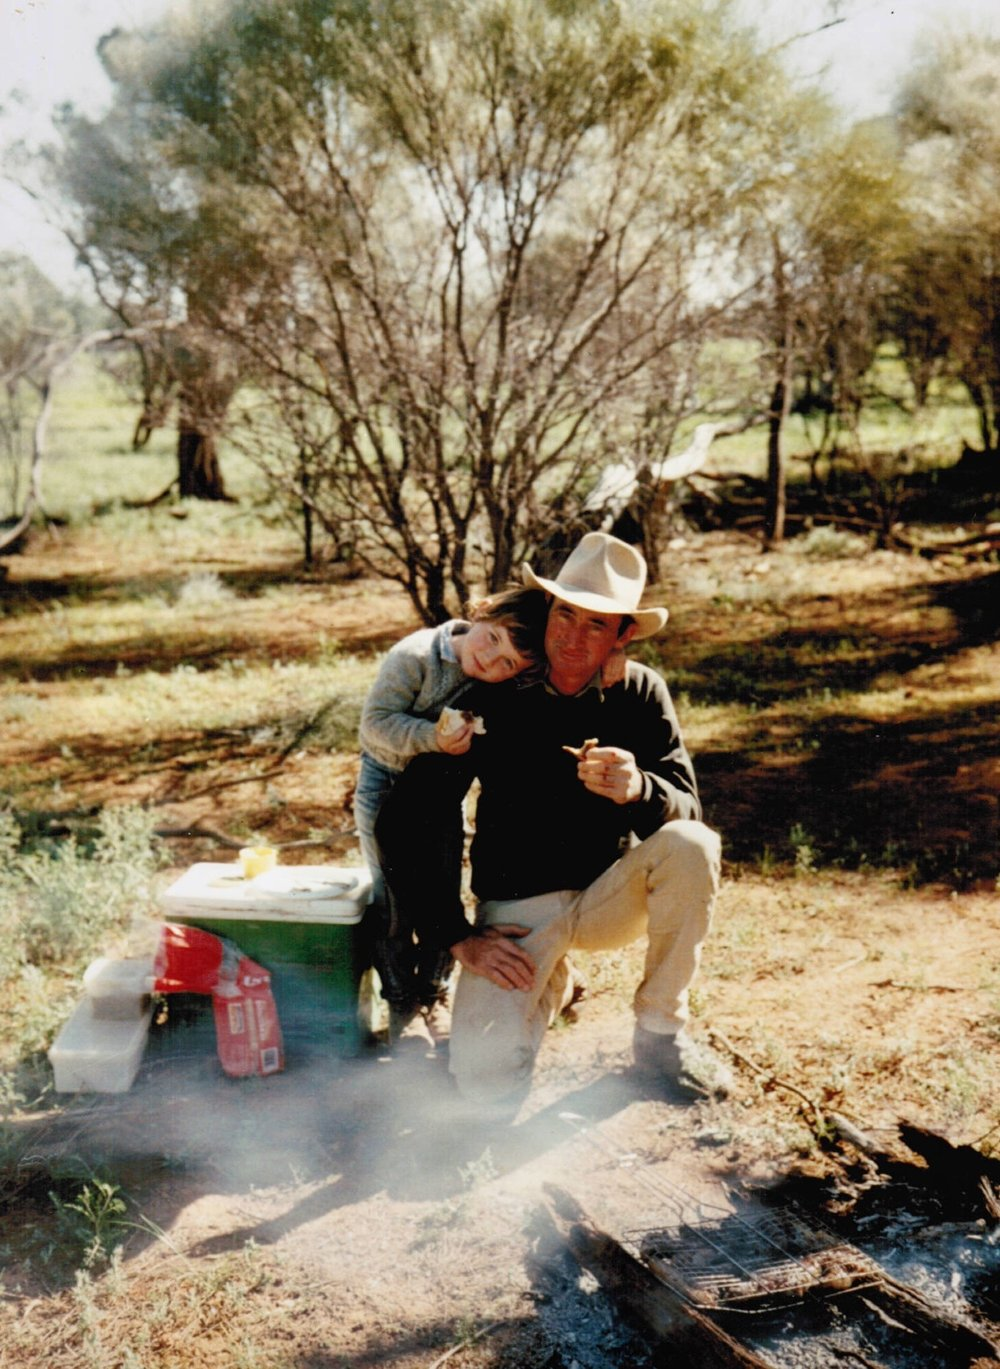 Lisa having a 'Sunday Picnic' at Eurella with her father Chris Stanmore, c. 1988, image supplied.